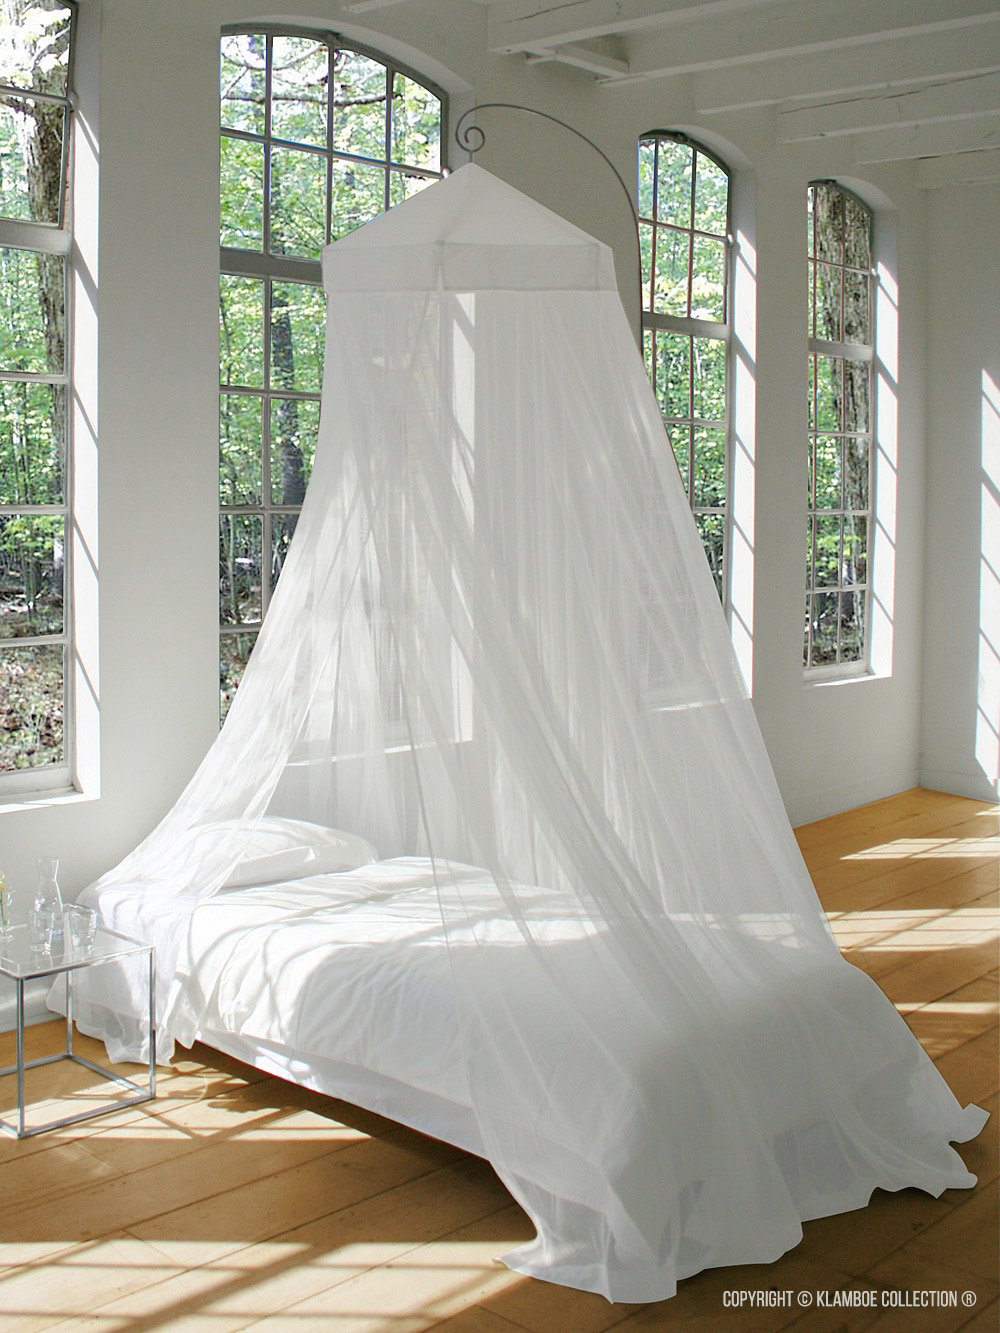 Klamboe Collection 174 Order Your Quality Mosquito Net In